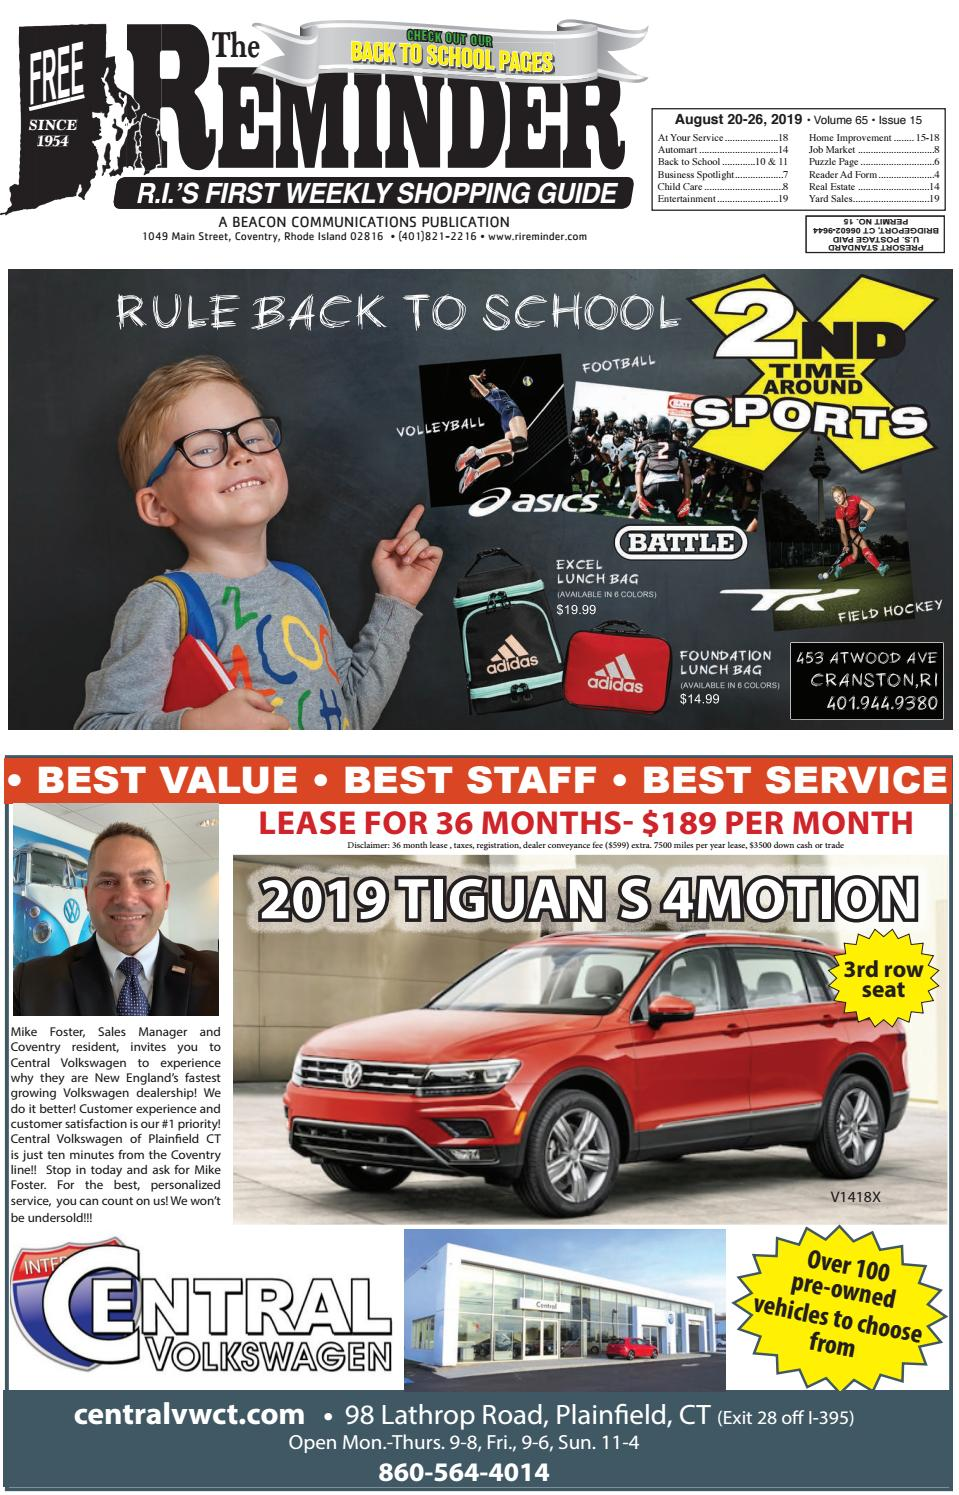 The Reminder August 20 26 2019 By Beacon Communications Issuu